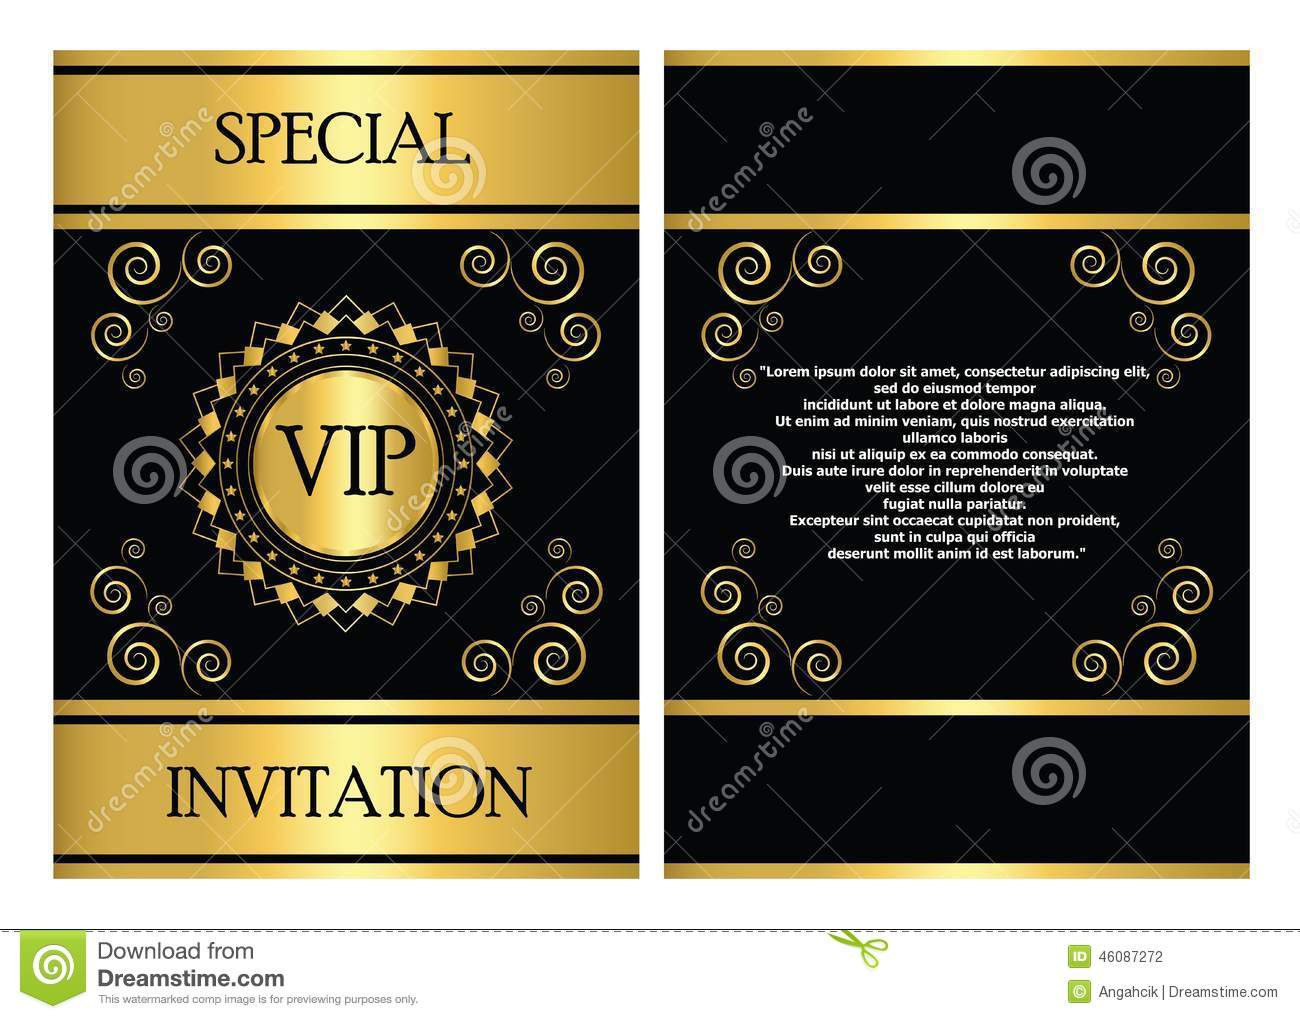 Vip Invitation Card Template Stock Vector Illustration Of Company